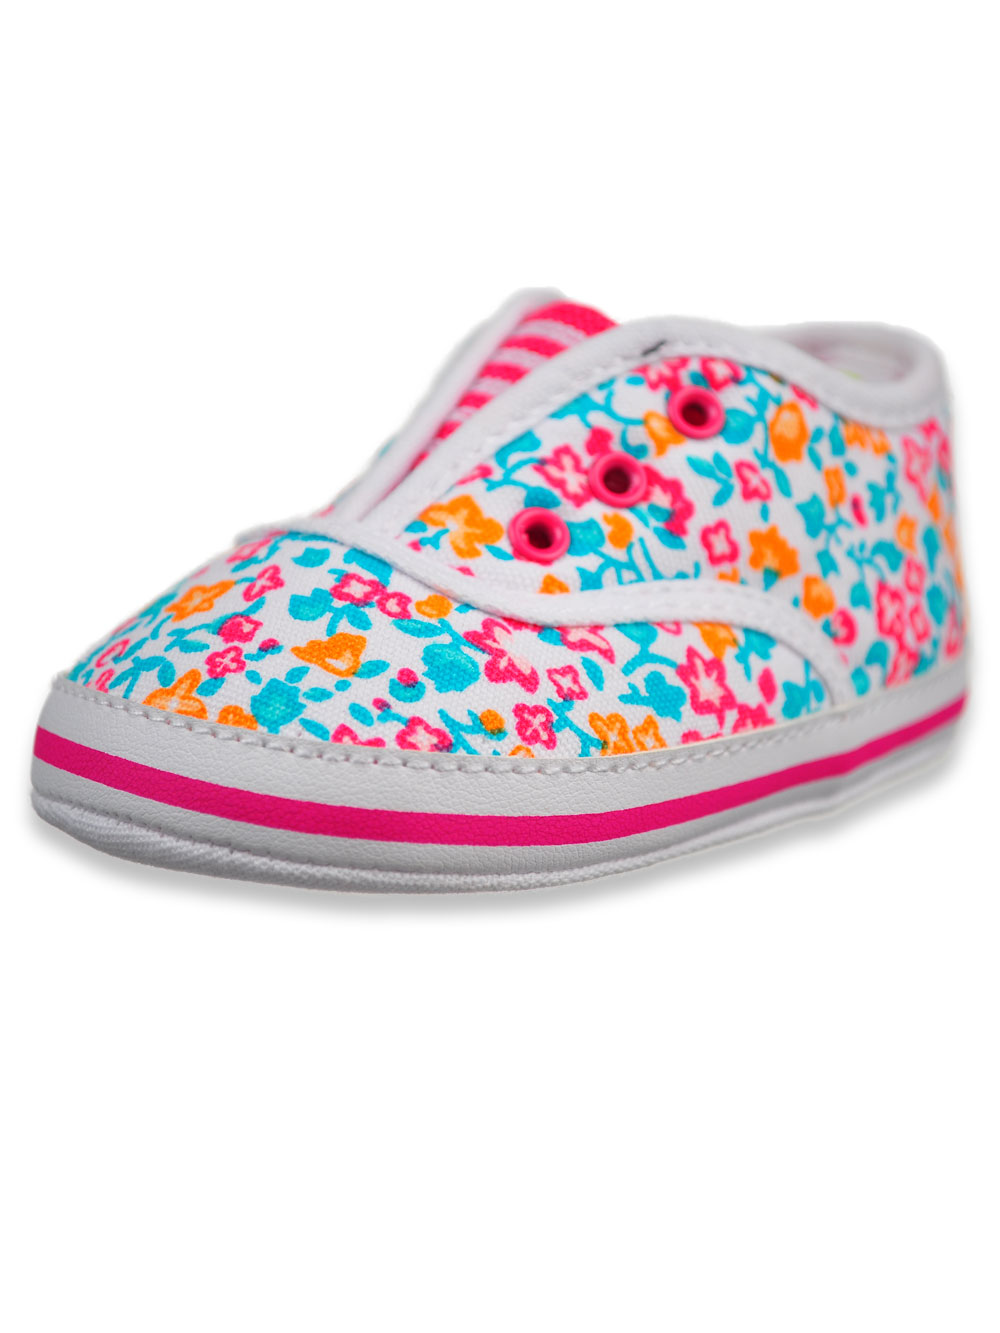 Baby Girls Pink Patent look Shoes with Minnie Mouse detail